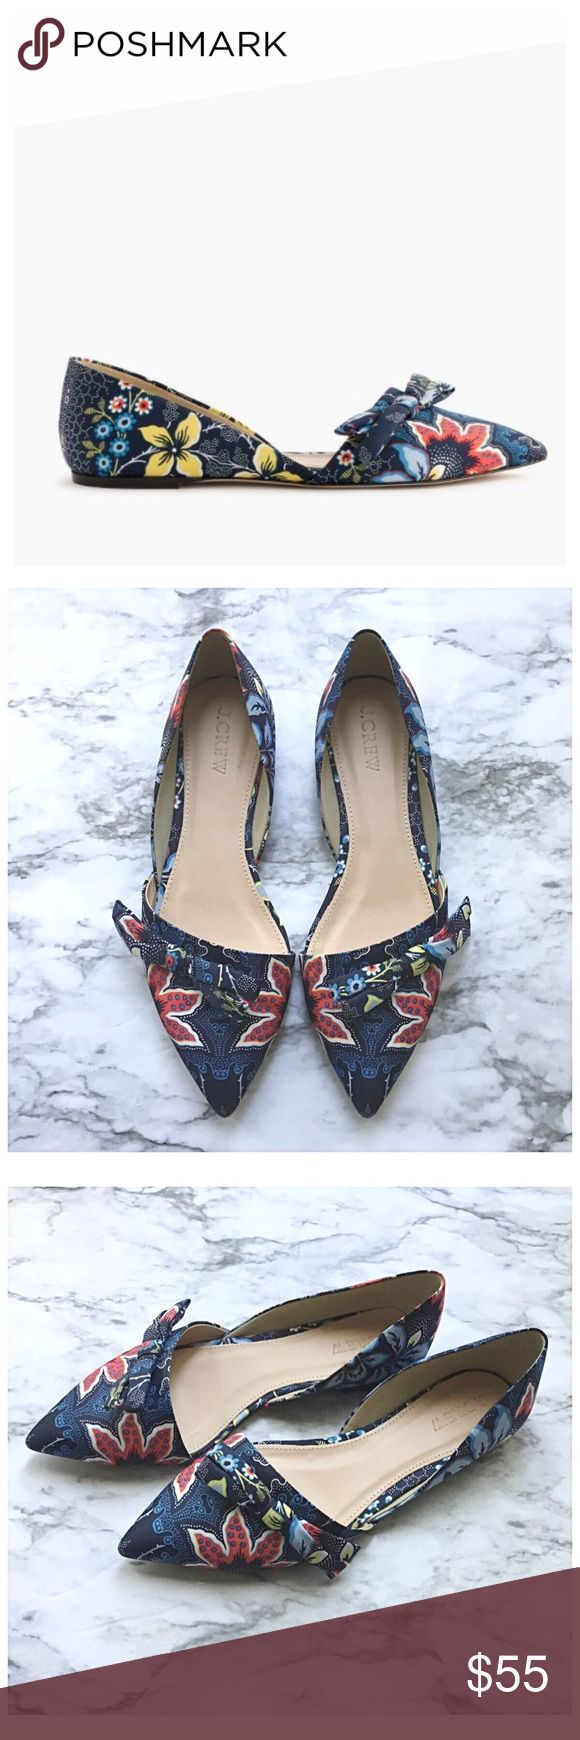 J.Crew Loan D'Orsay Flat J.Crew Sloan D'Orsay Flat in Batik Floral. An open d'orsay flat finished with a side bow and batik inspired print.  Cotton upper with leather sole. Runs true to size. Colors of the pattern are reflected in the 4 pics above.. cover photo is a little different. J. Crew Shoes Flats & Loafers